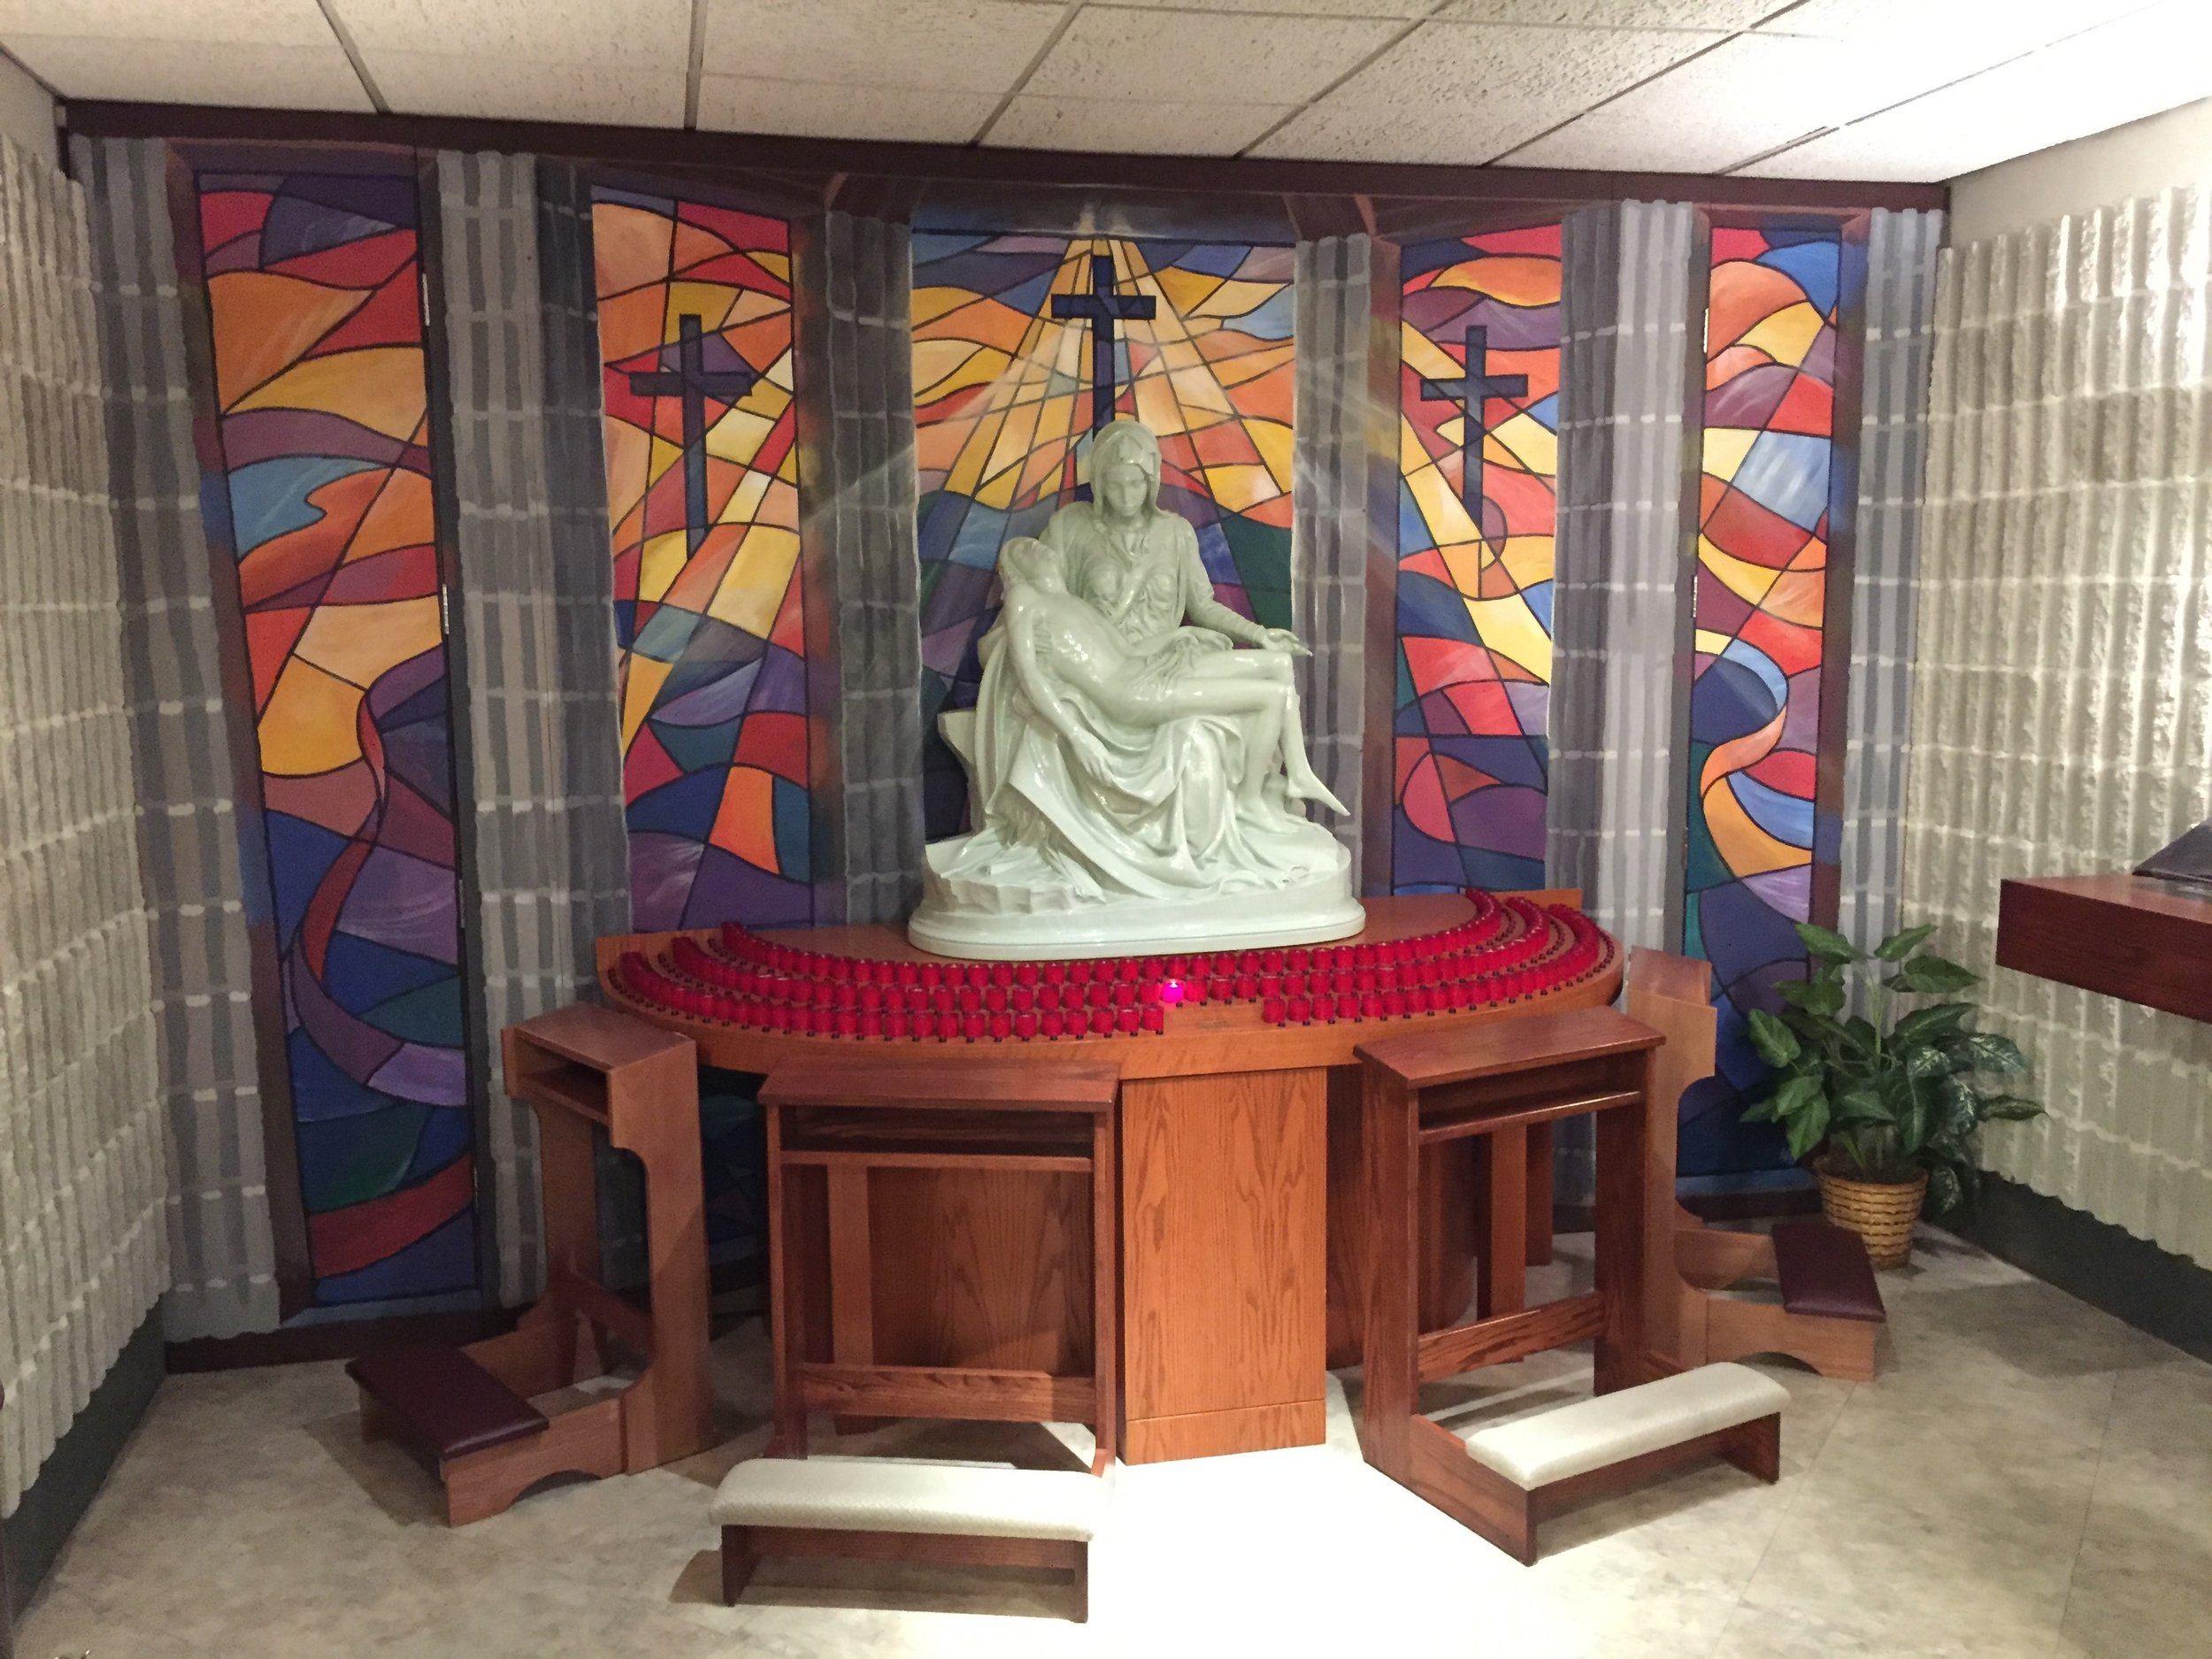 Stained Glass Mural for Pieta Statue